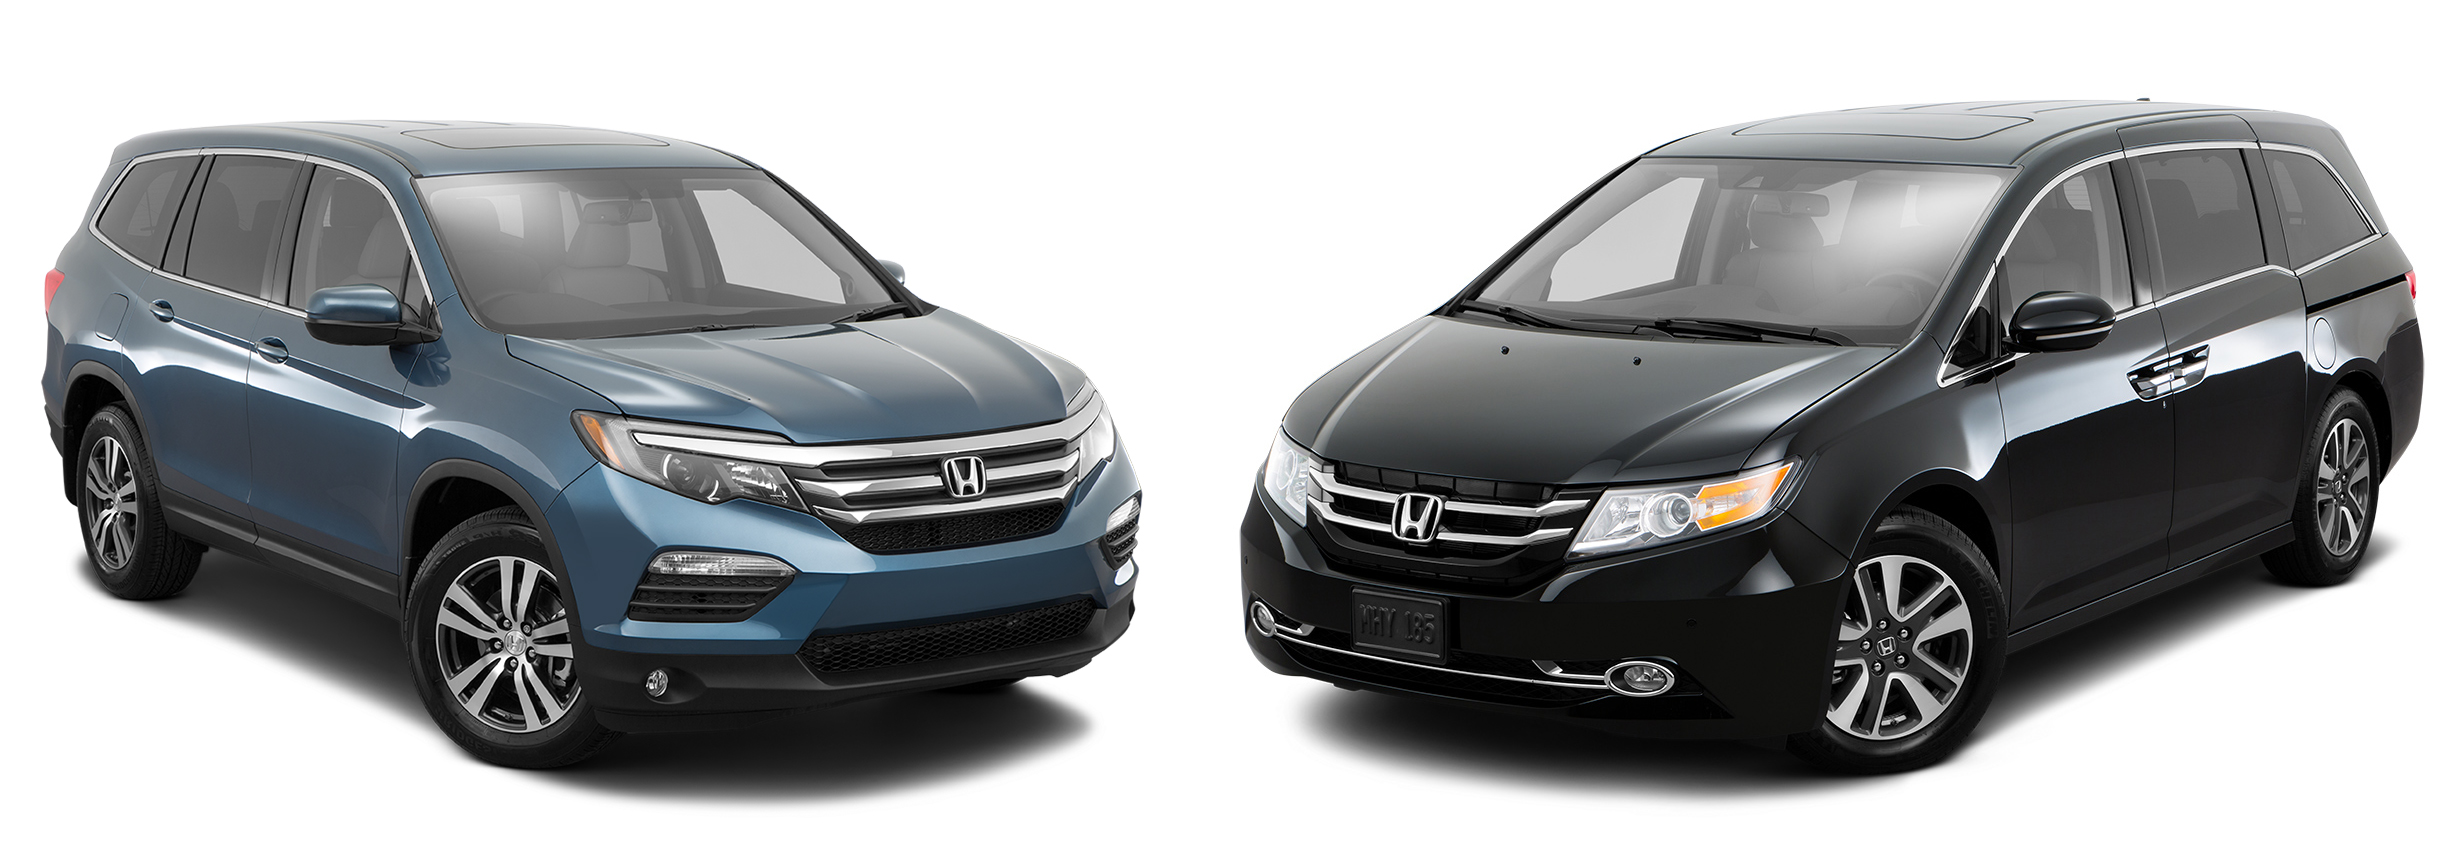 2016 honda odyssey vs 2016 honda pilot brannon honda. Black Bedroom Furniture Sets. Home Design Ideas